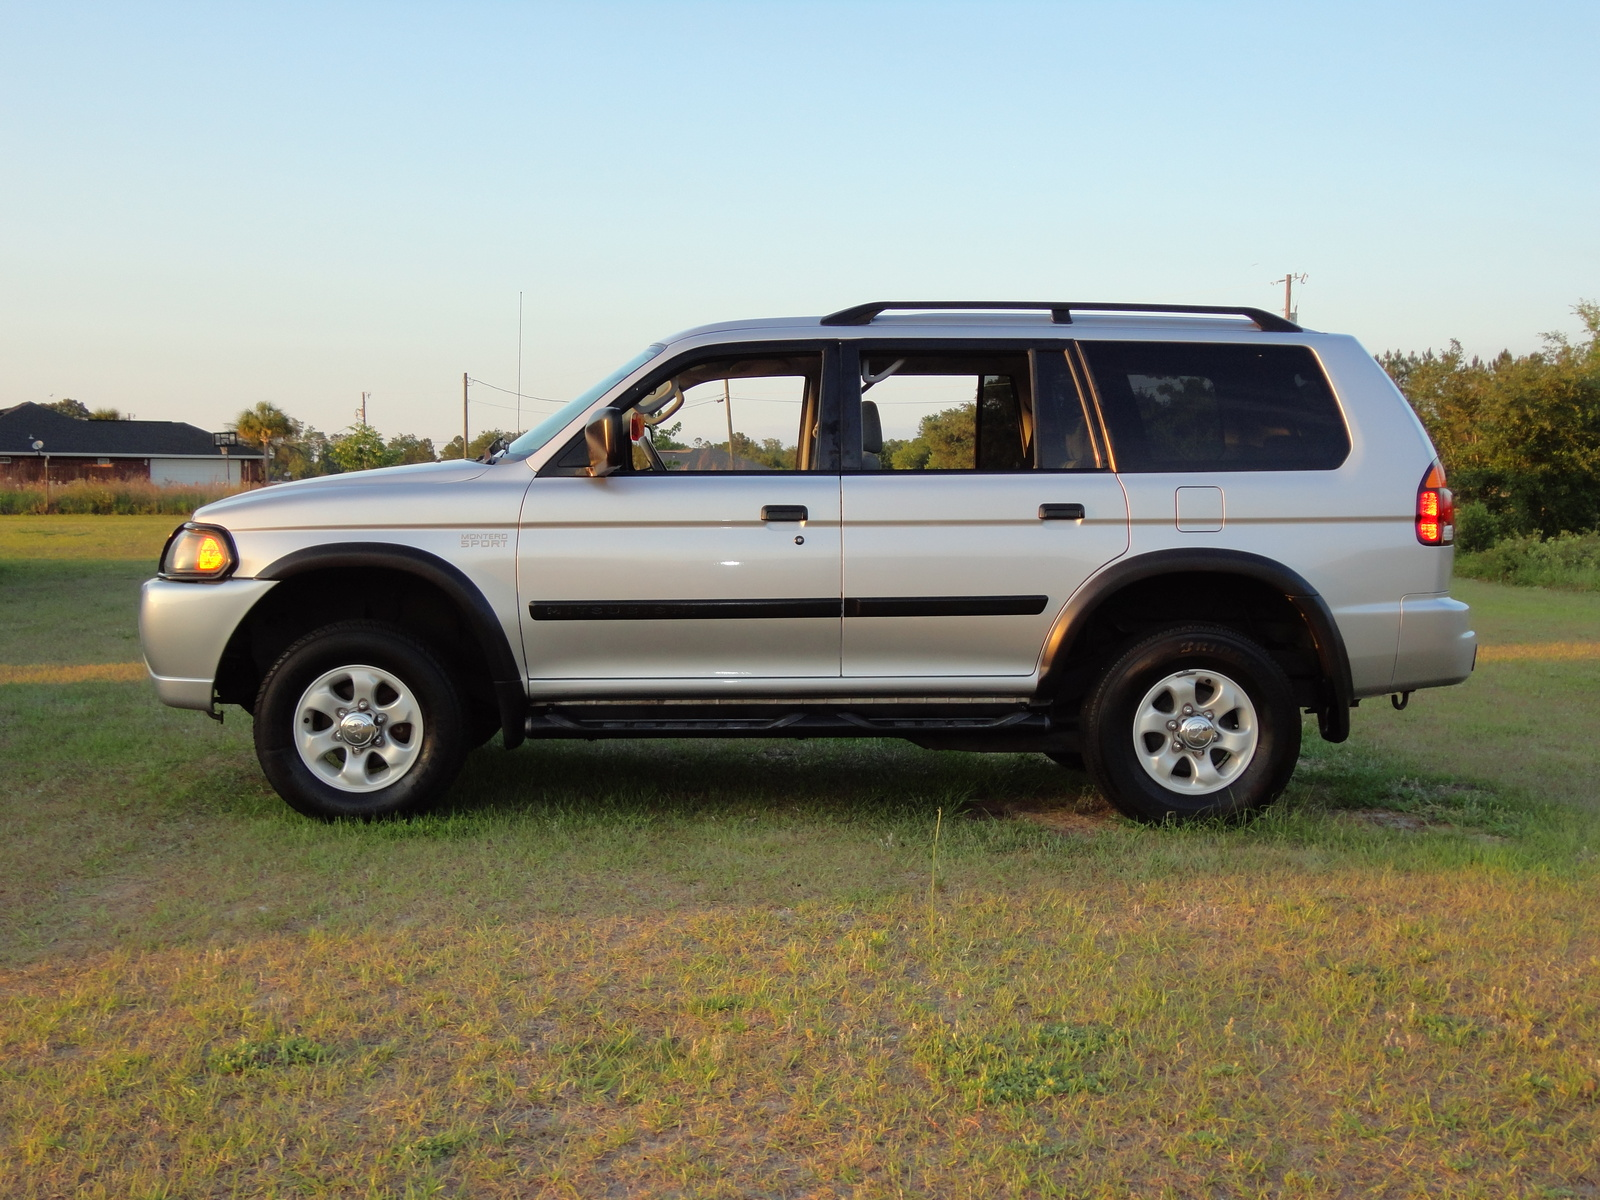 picture of 2003 mitsubishi montero sport es exterior_cce64?resize\=665%2C499 cce wiring diagram friendship bracelet diagrams, lighting cce switch box wiring diagram at suagrazia.org